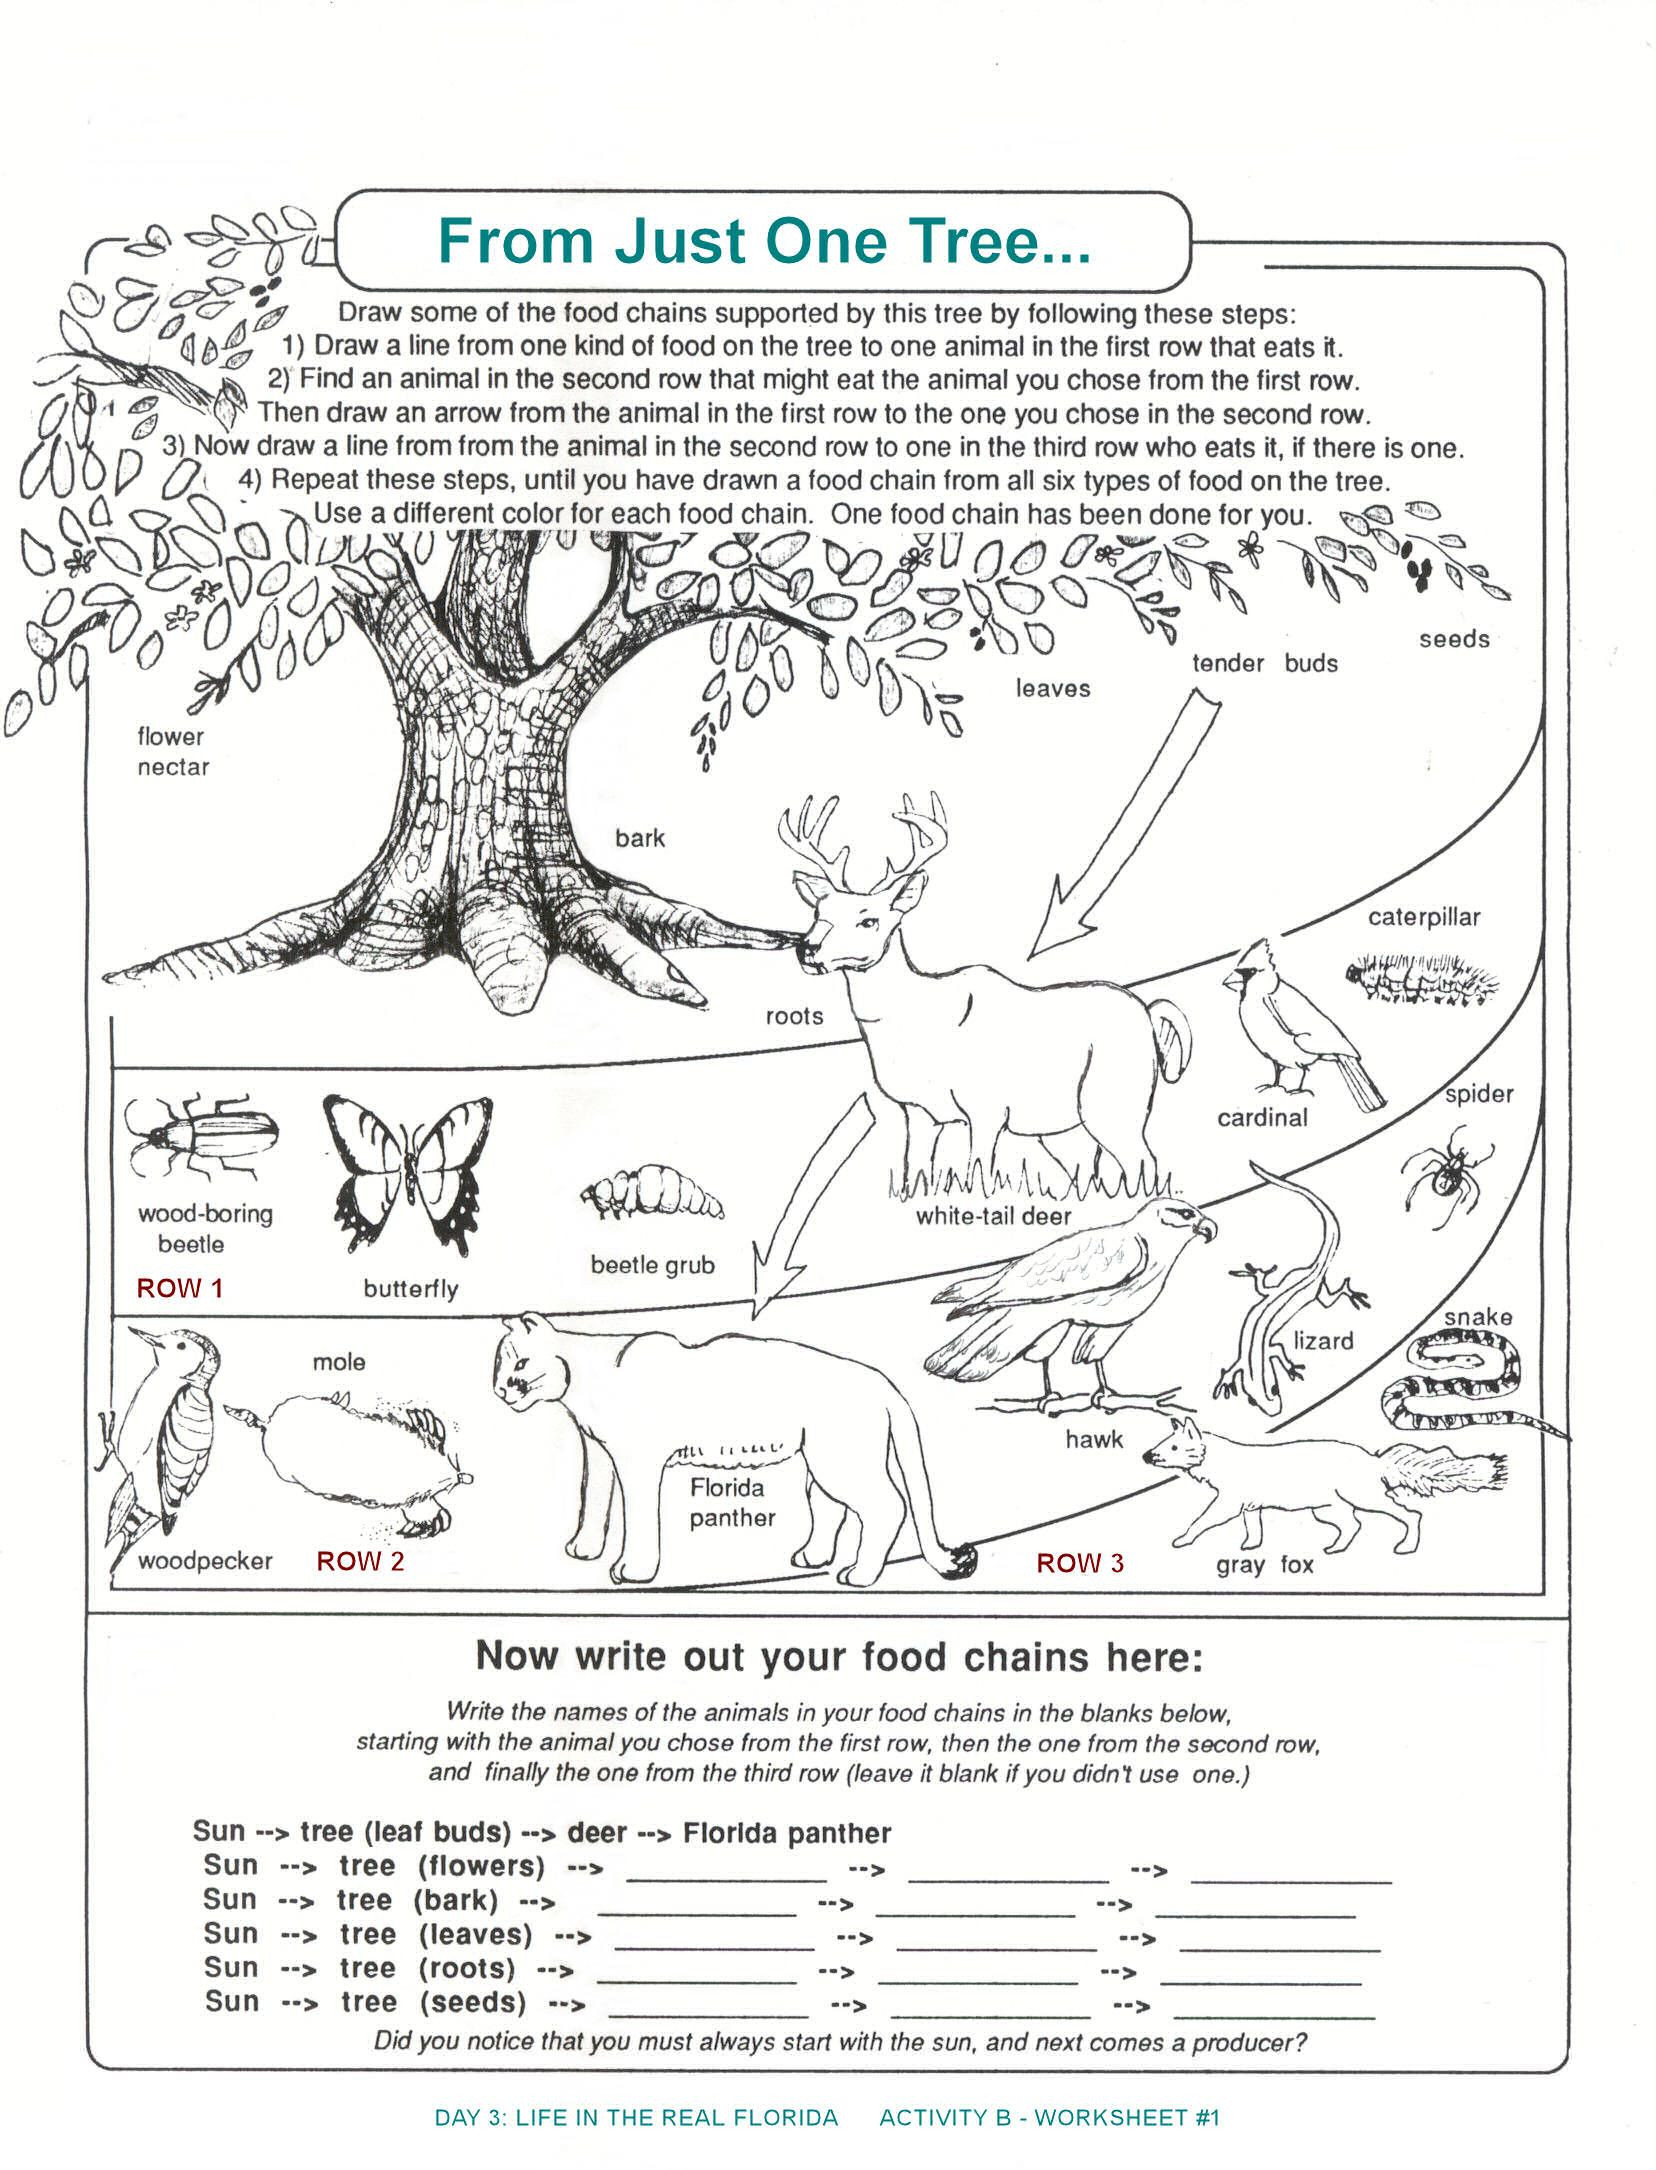 Ecology Worksheets Middle School What Do We Lose with Deforestation